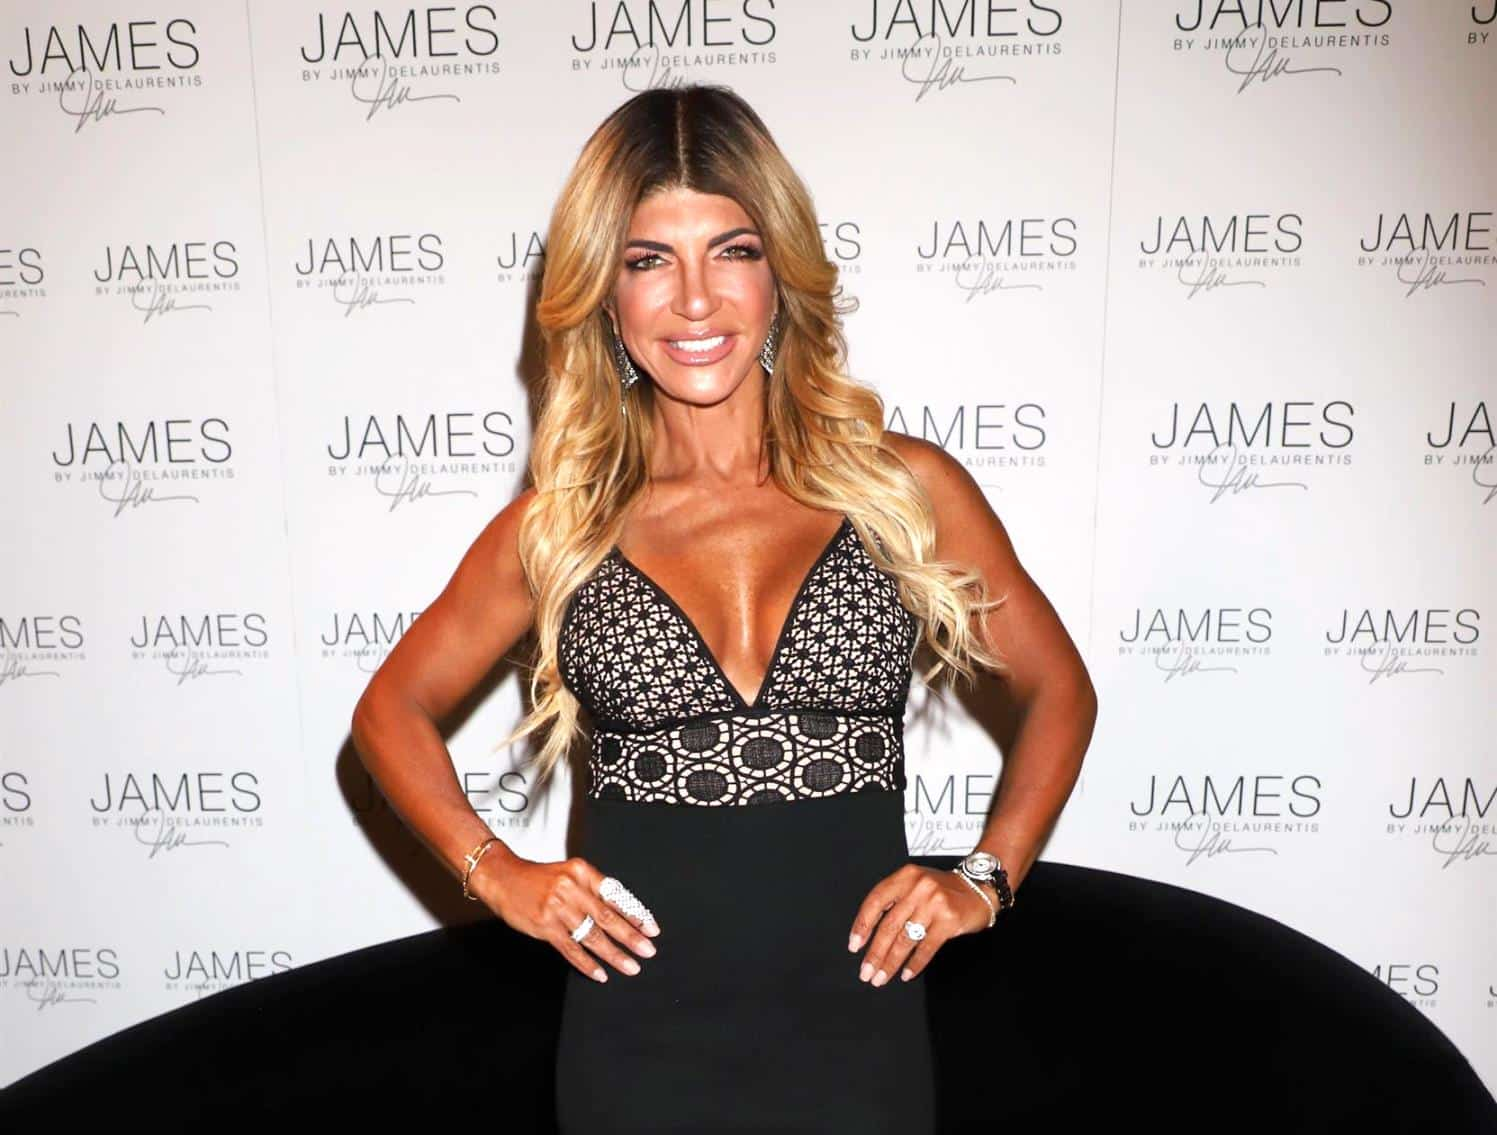 RHONJ's Teresa Giudice Gets New Breast Implants